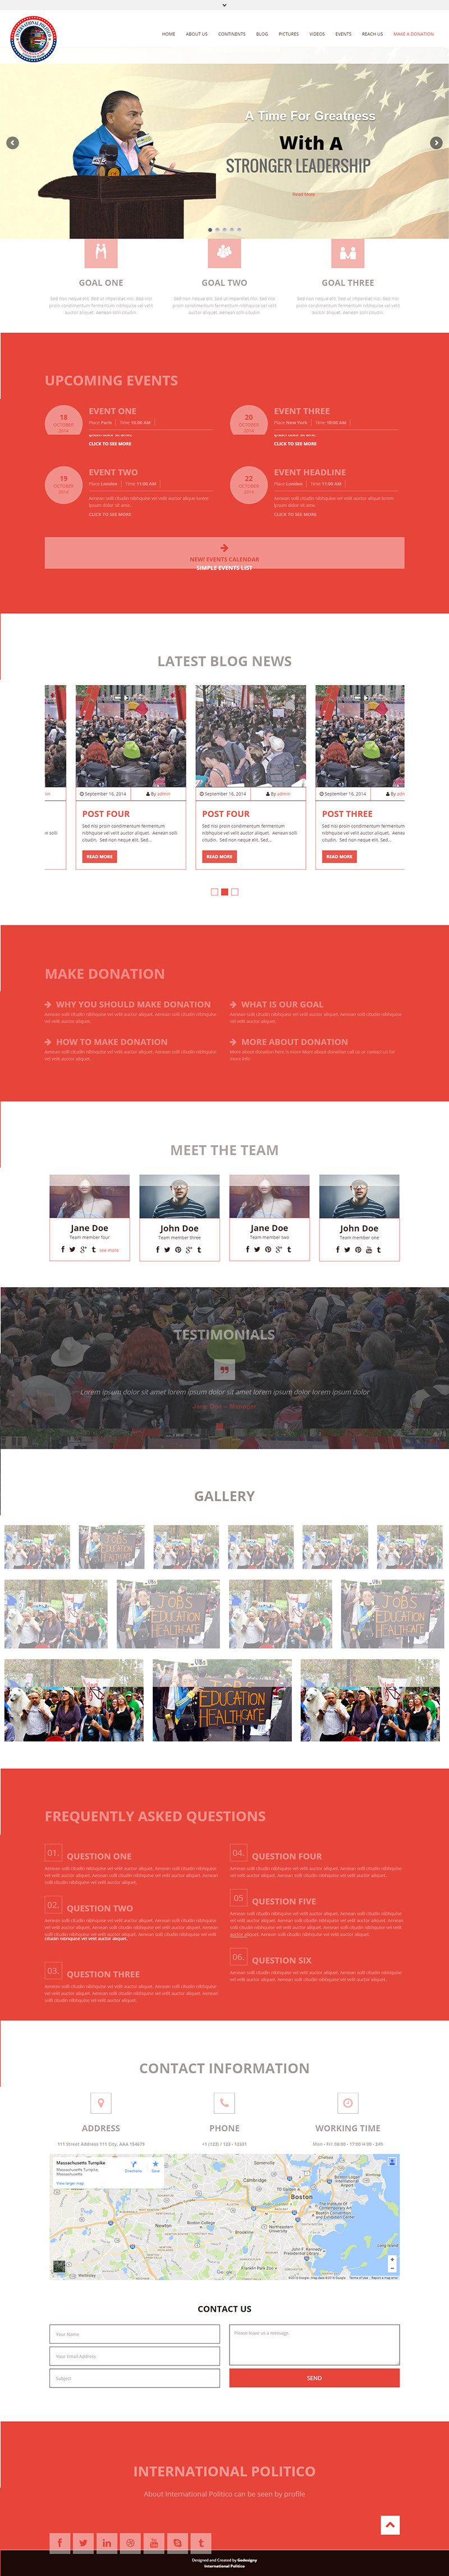 Political Profile Website Design